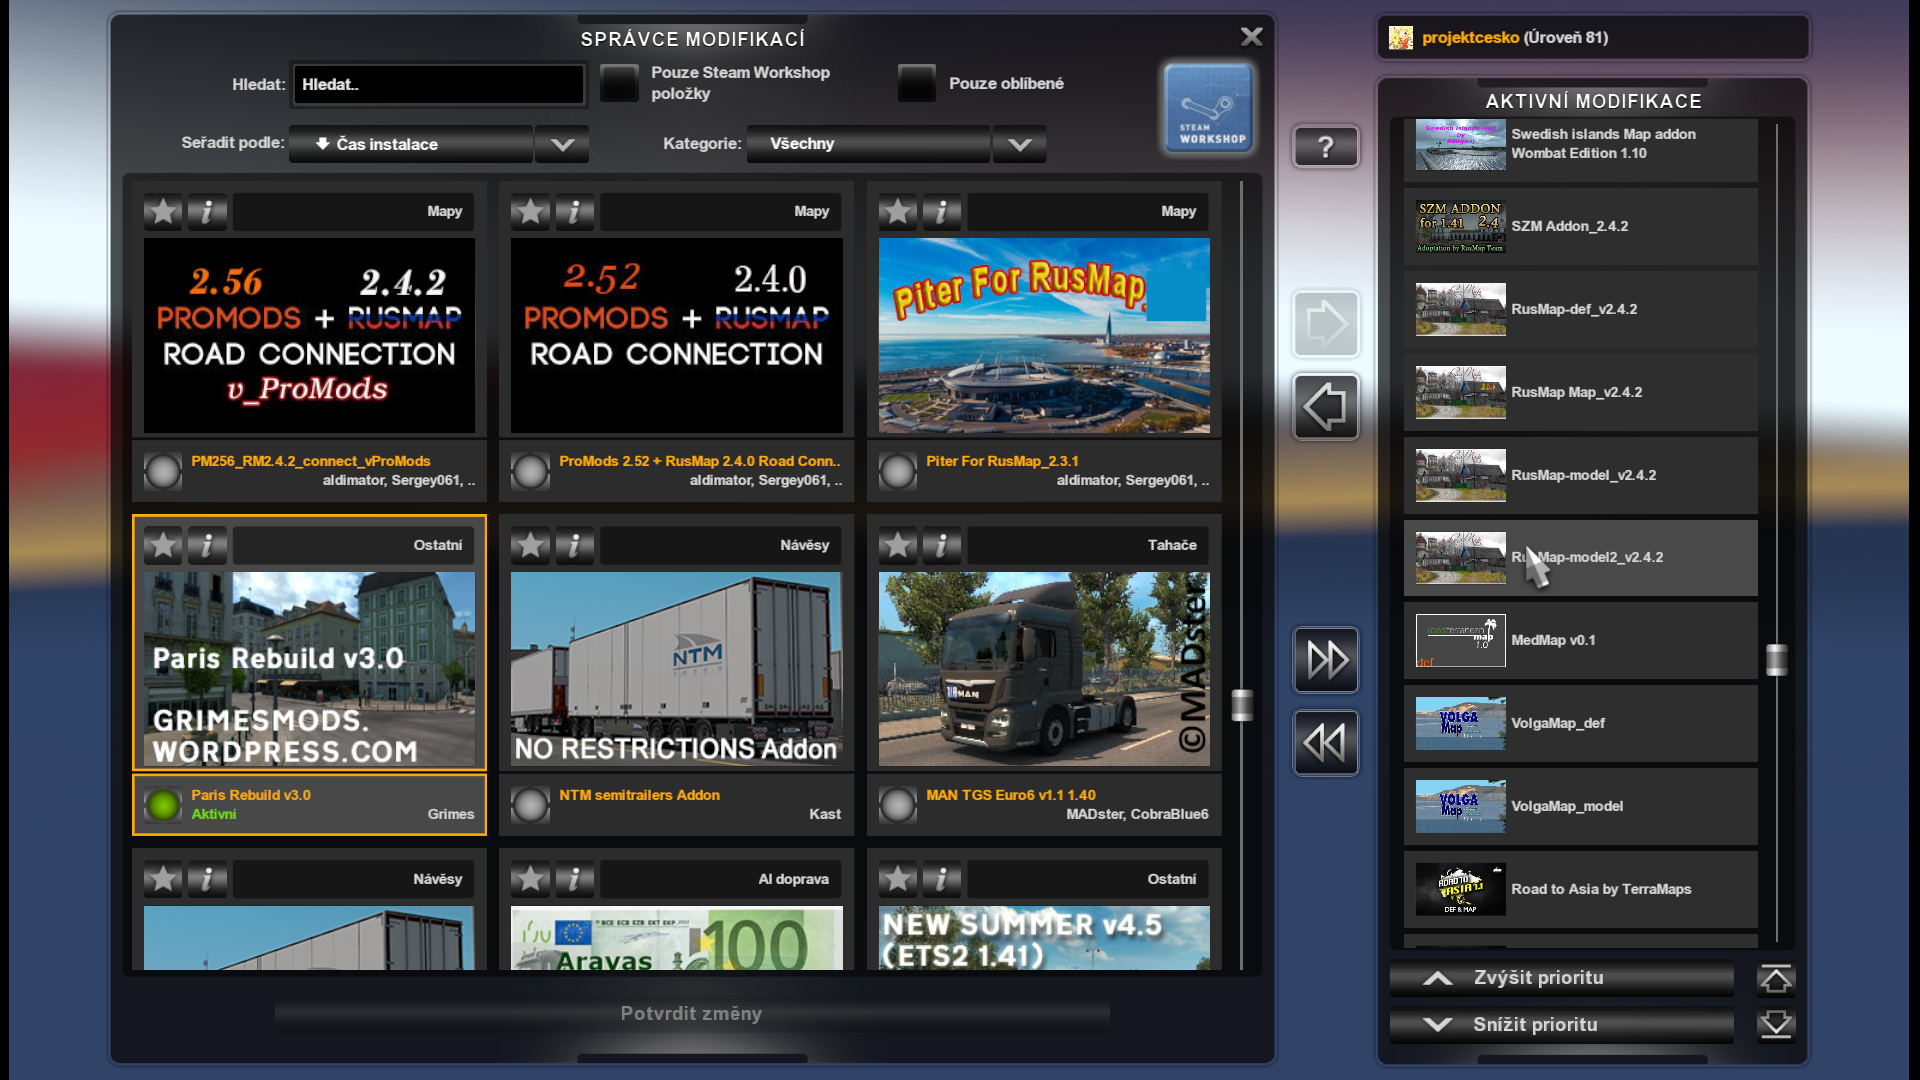 ets2_20210831_143203_00.png